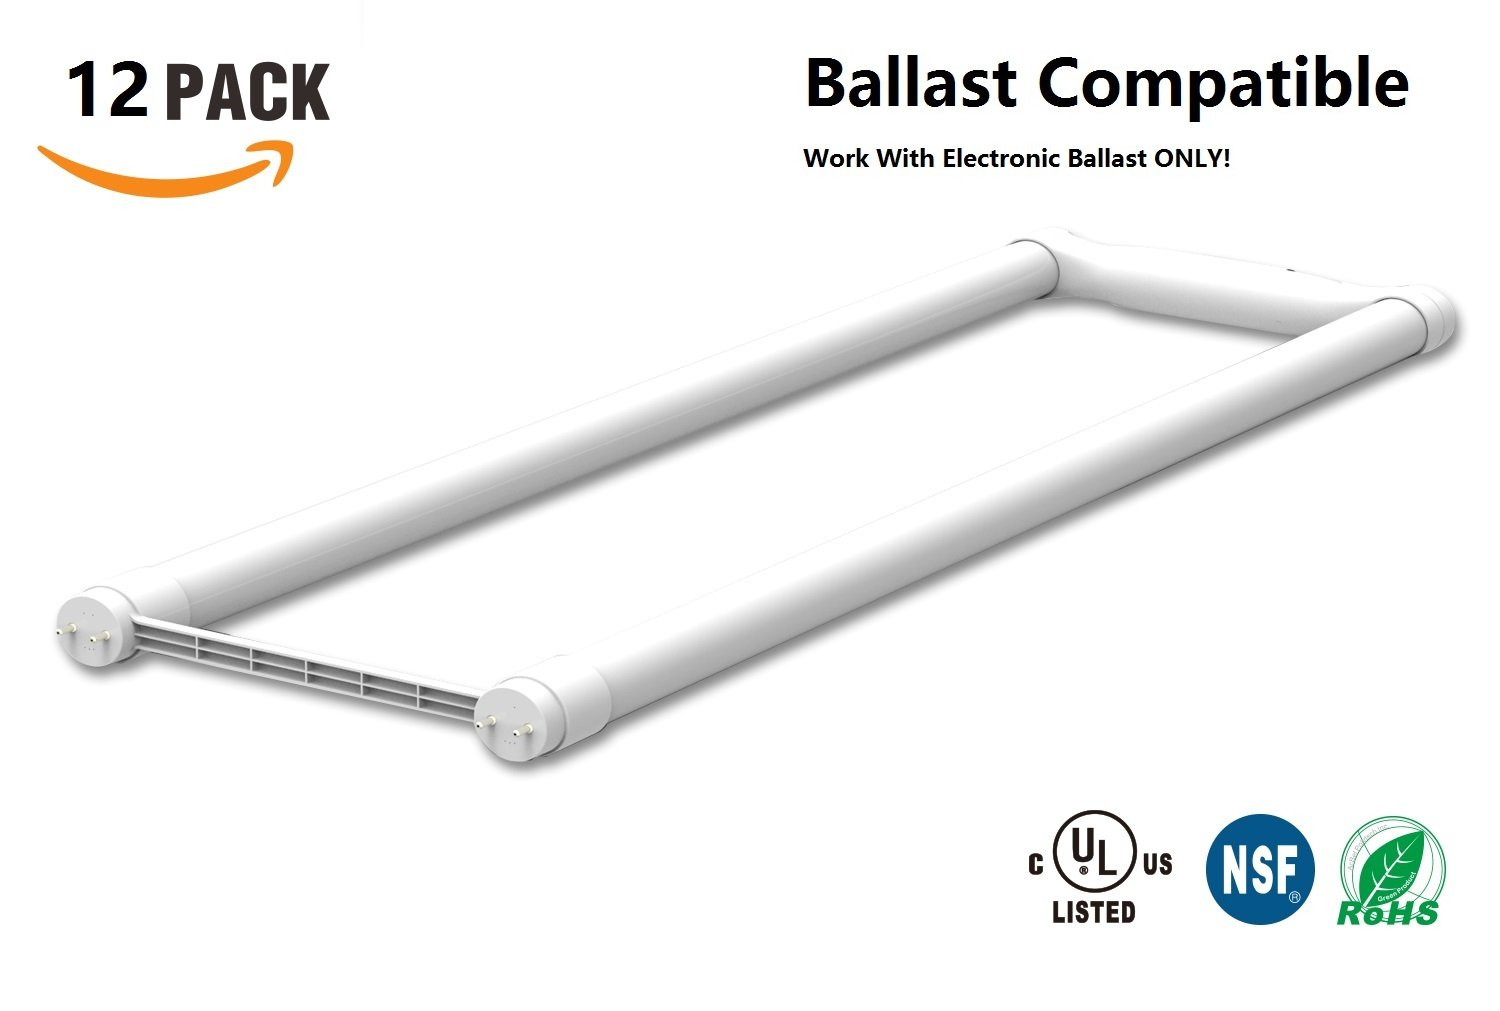 12-Pack Ballast Compatible U Bent LED Tube, 12W 1800lm(32W or Higher Equivalent), 5000K(Dayligt), Work With Electronic Ballast, Frosted, Glass, UL-Listed(12, 12W 5000K)